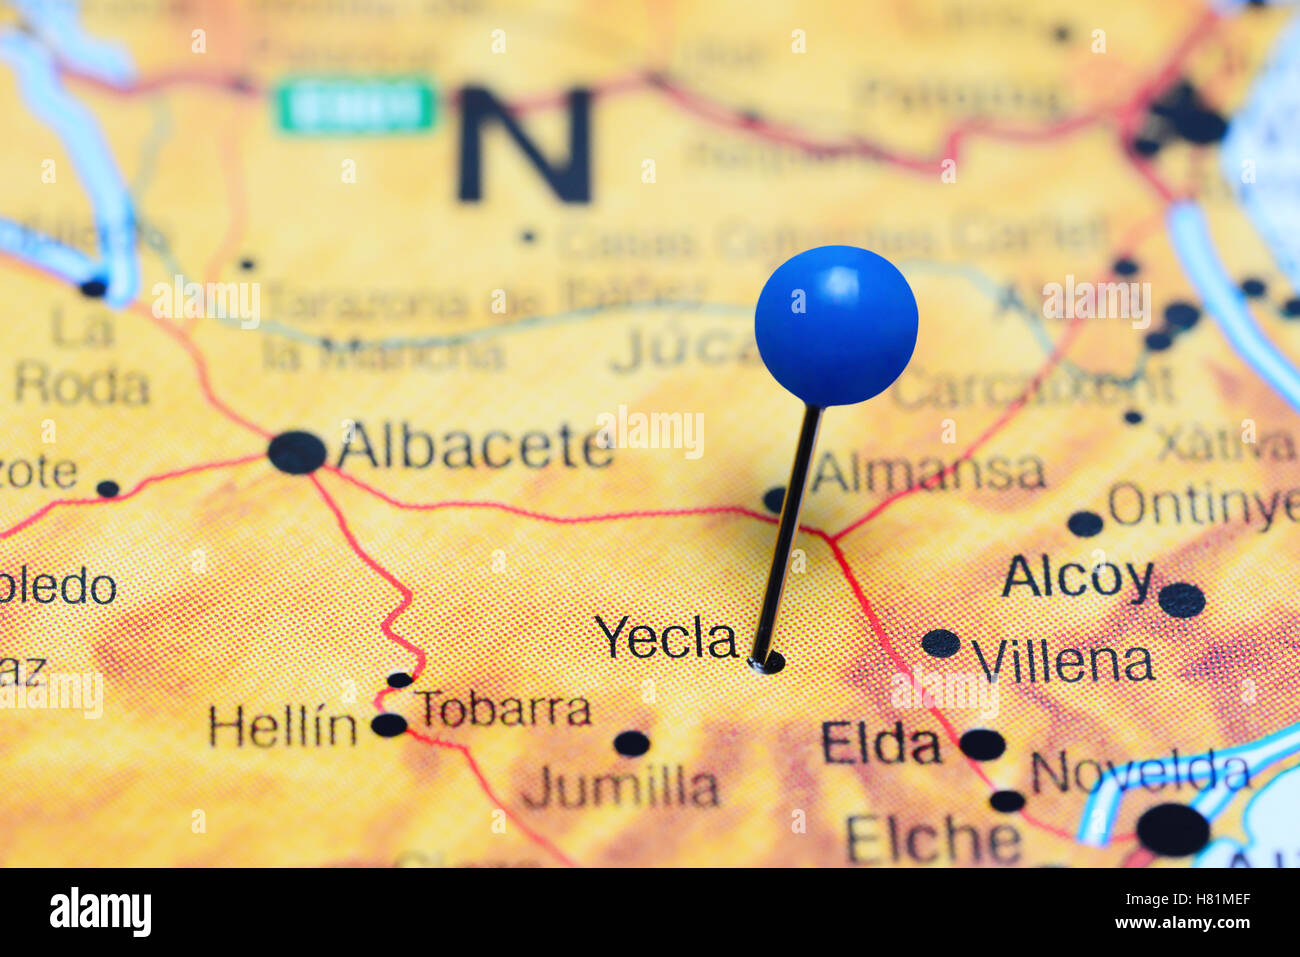 Map Of Yecla Spain.Yecla Pinned On A Map Of Spain Stock Photo 125427863 Alamy